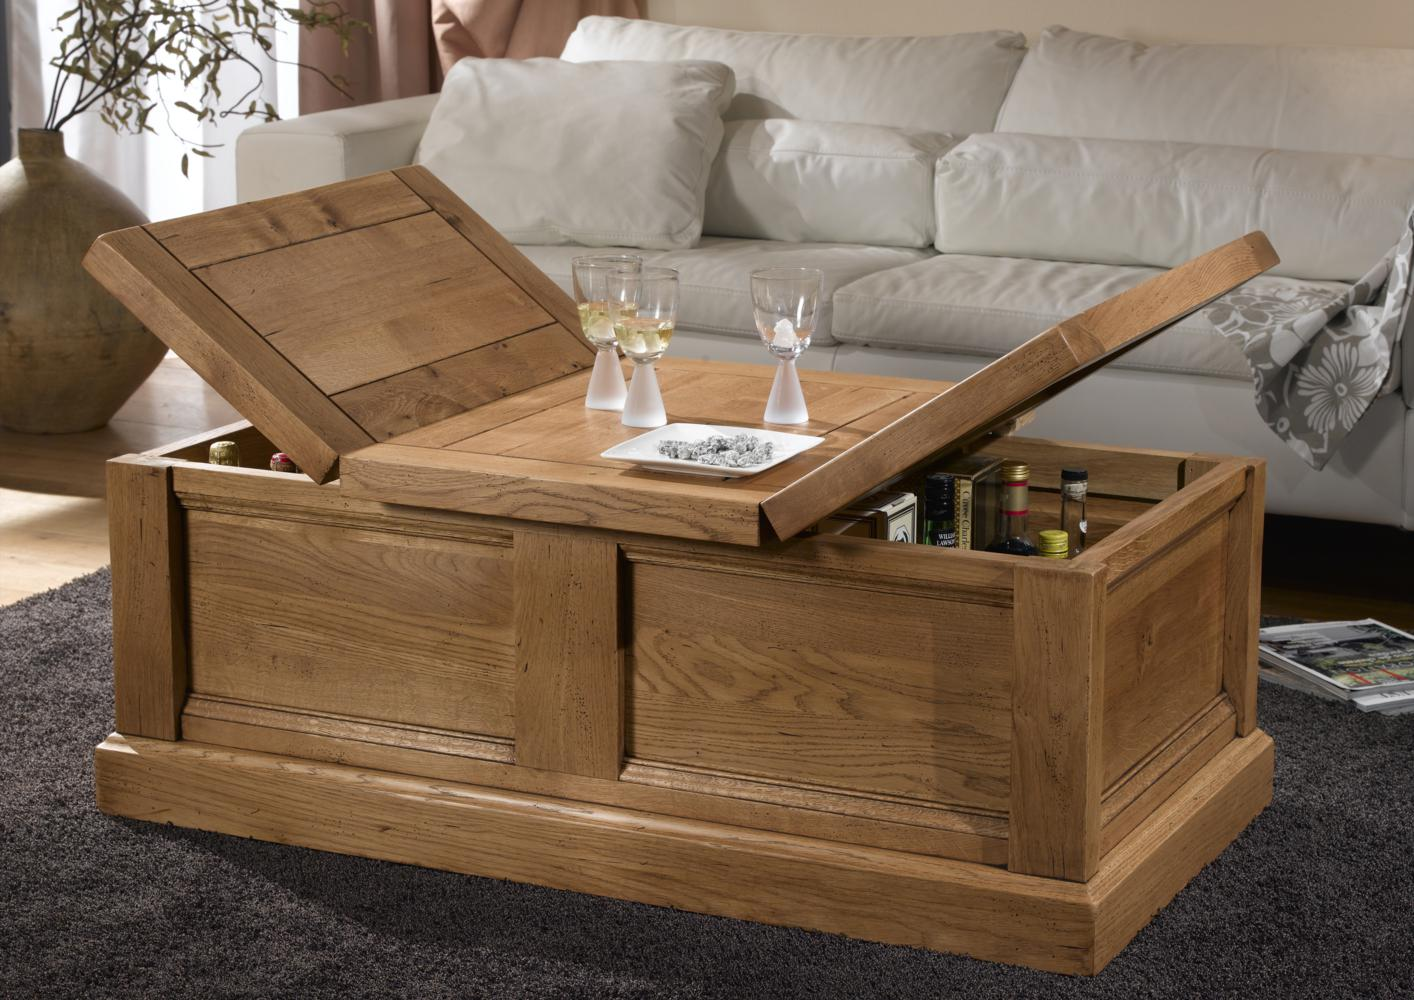 Table basse coffre bar - Table basse avec rangement bar ...